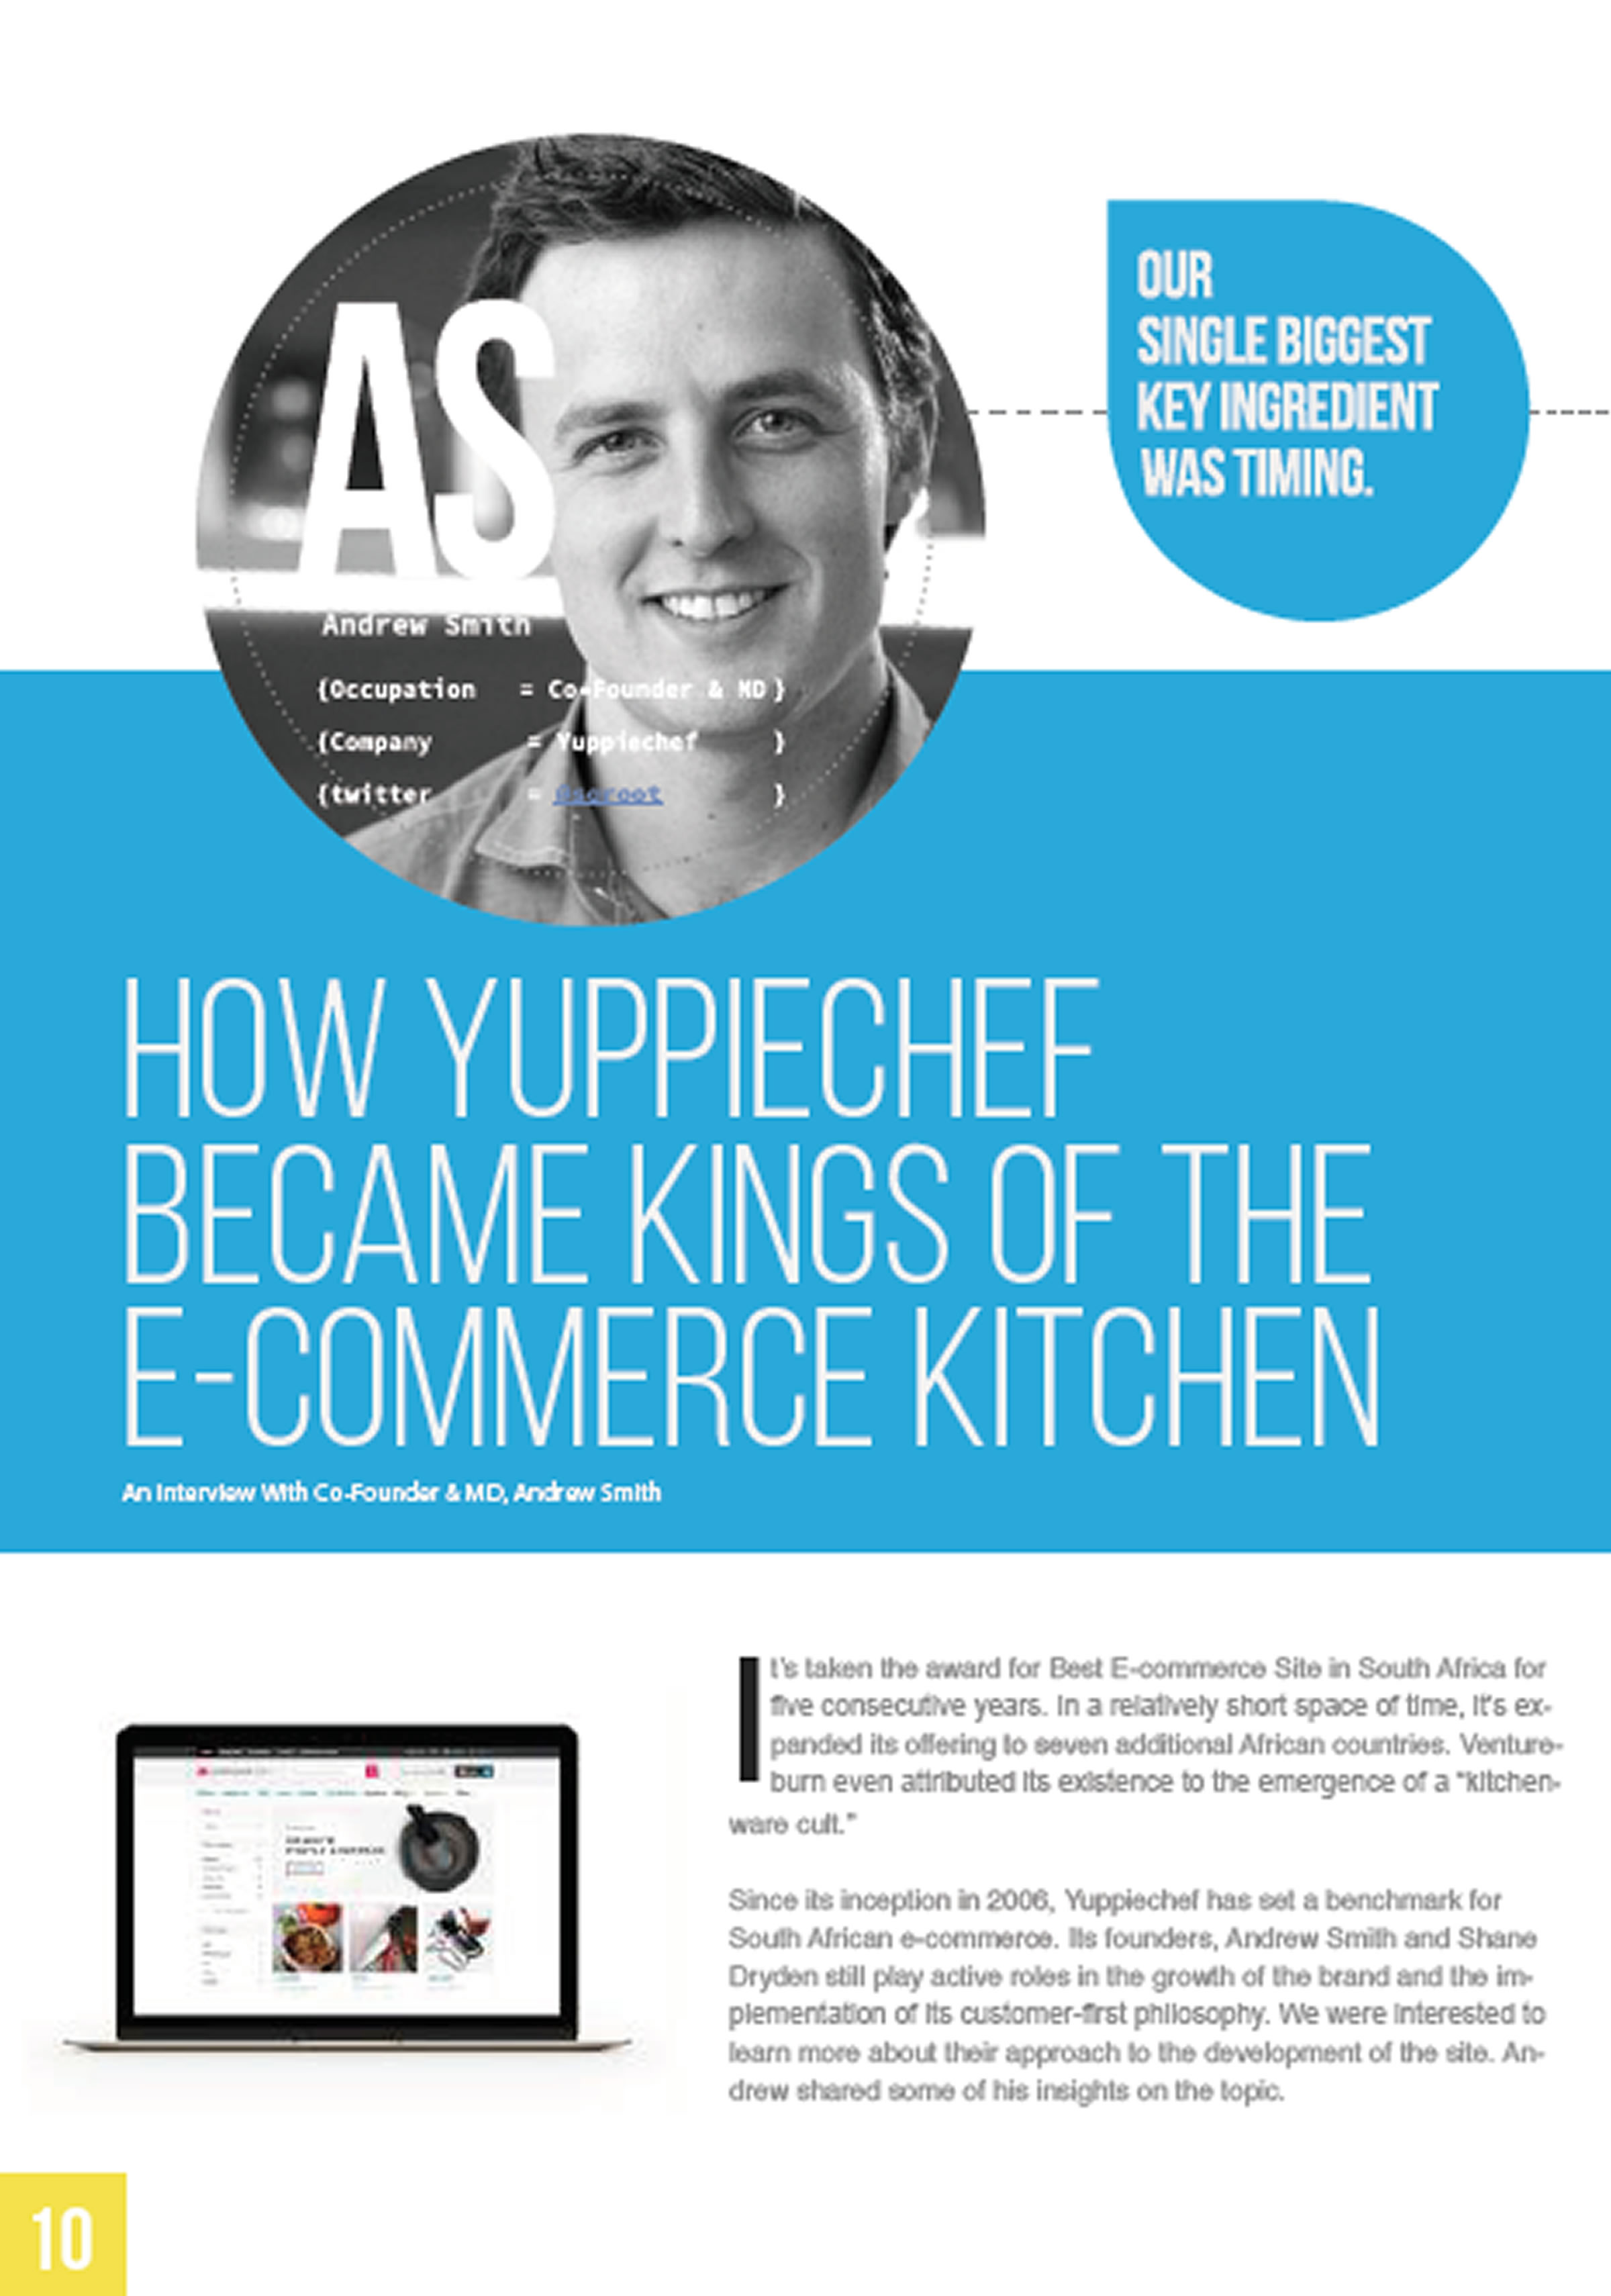 We had a few words with Andrew Smith, CEO of  Yuppiechef . He's a smart fella. Good looking too, but don't tell him or he'll get ahead of himself.